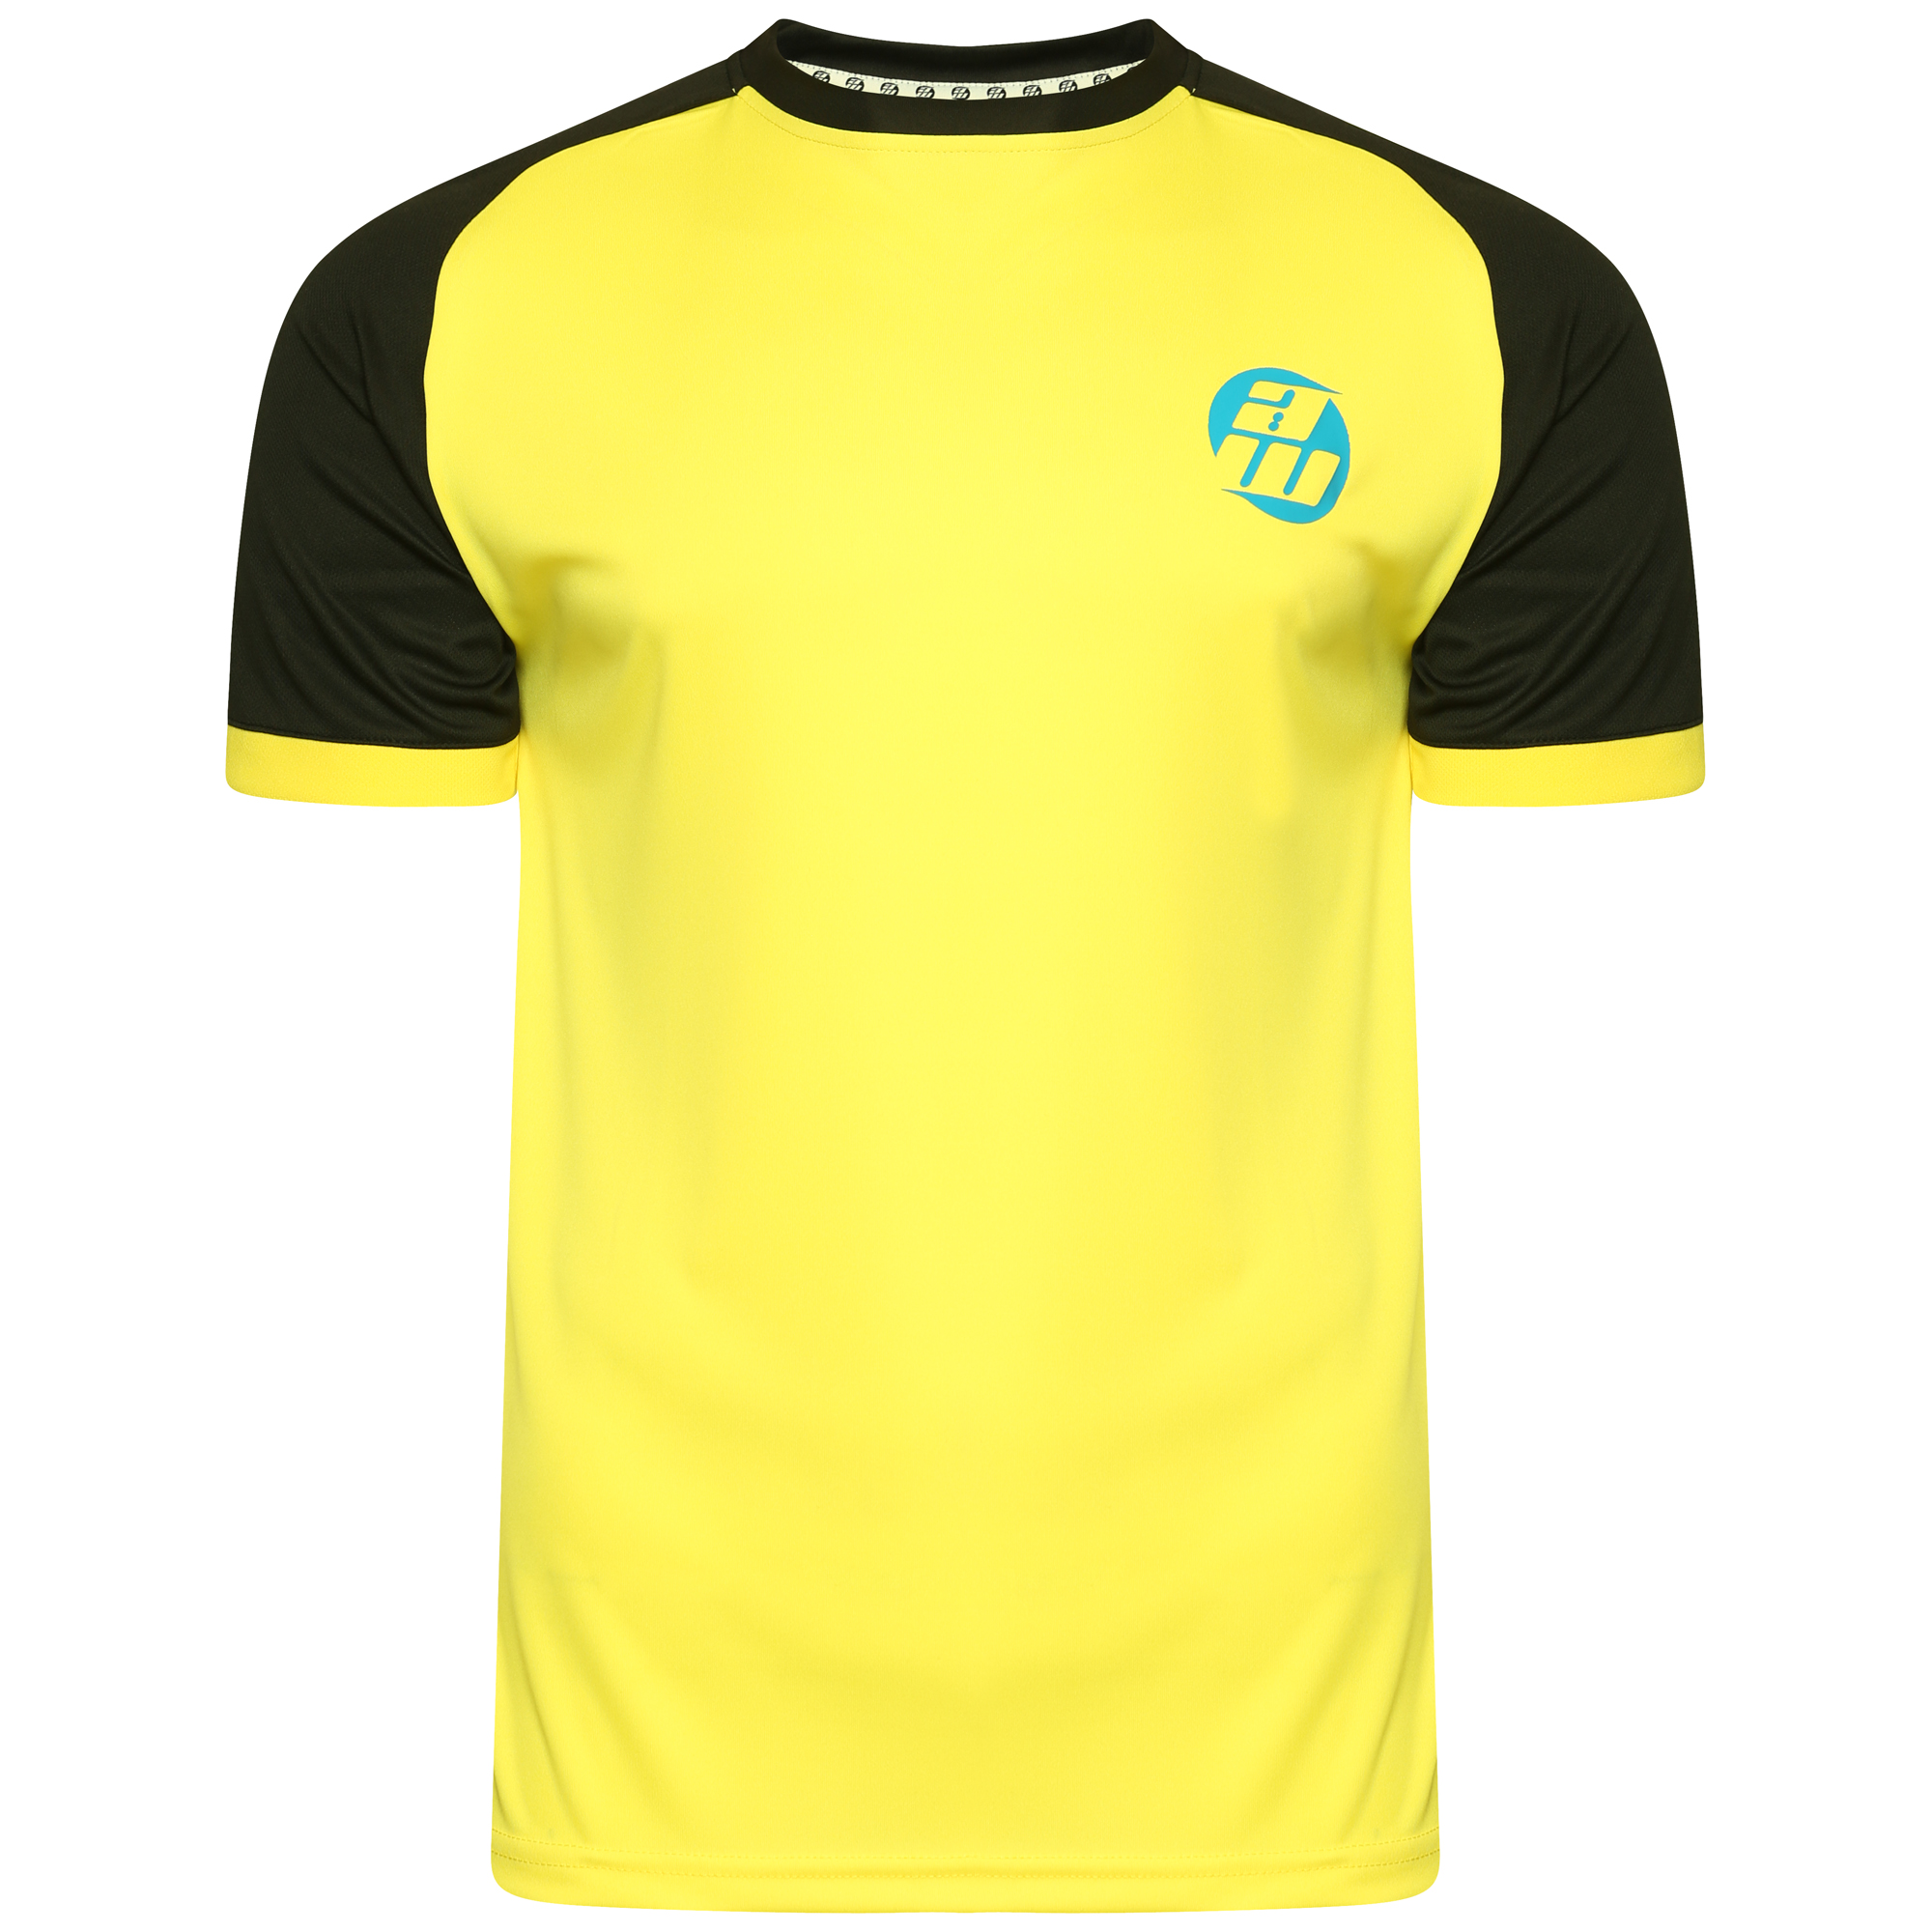 AWsome Yellow Flash Tshirt